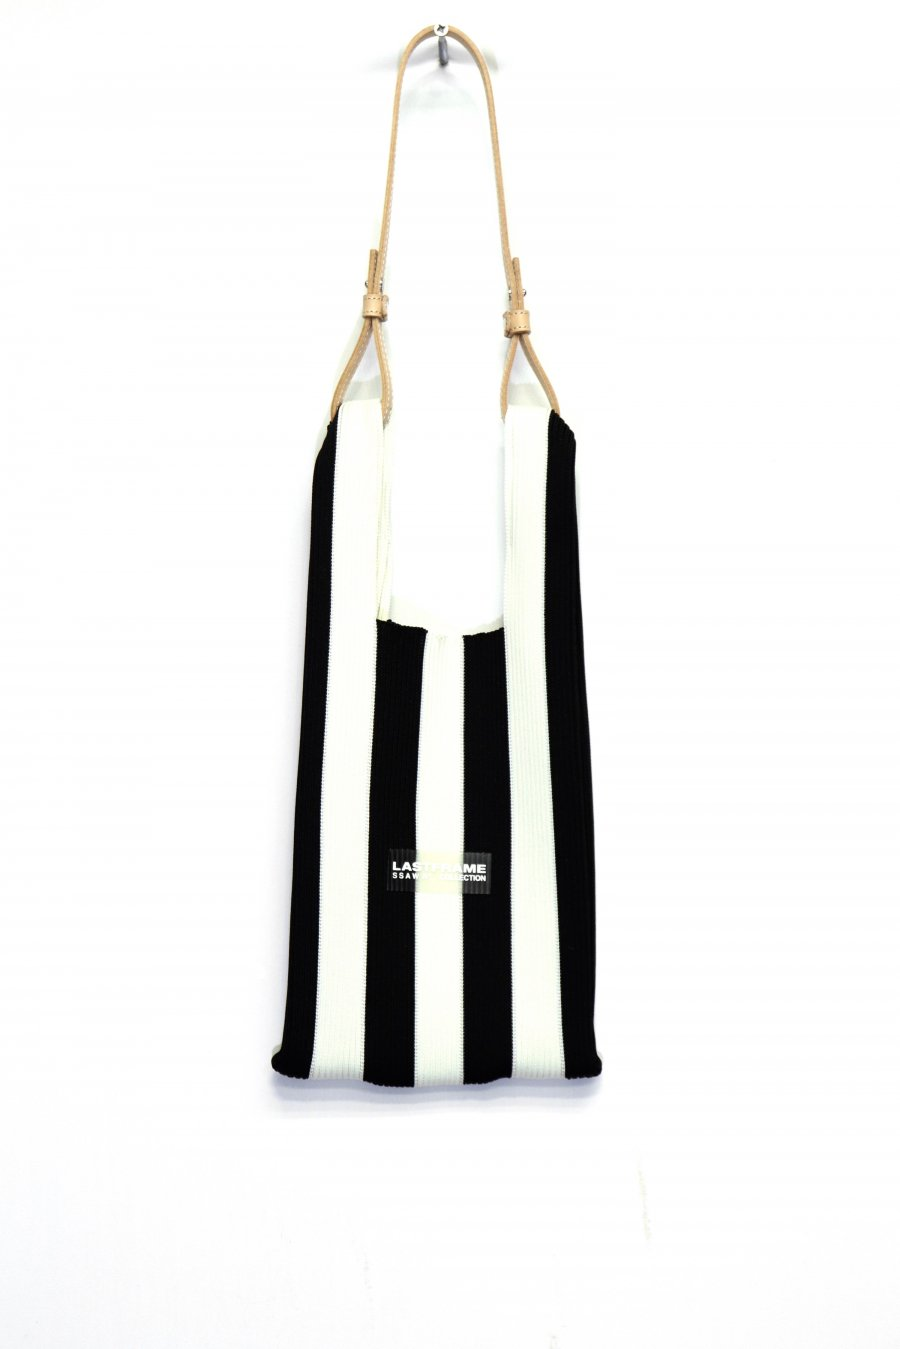 LASTFRAME  STRIPE MARKET BAG SMALL(BLACK x WHITE)<img class='new_mark_img2' src='https://img.shop-pro.jp/img/new/icons15.gif' style='border:none;display:inline;margin:0px;padding:0px;width:auto;' />